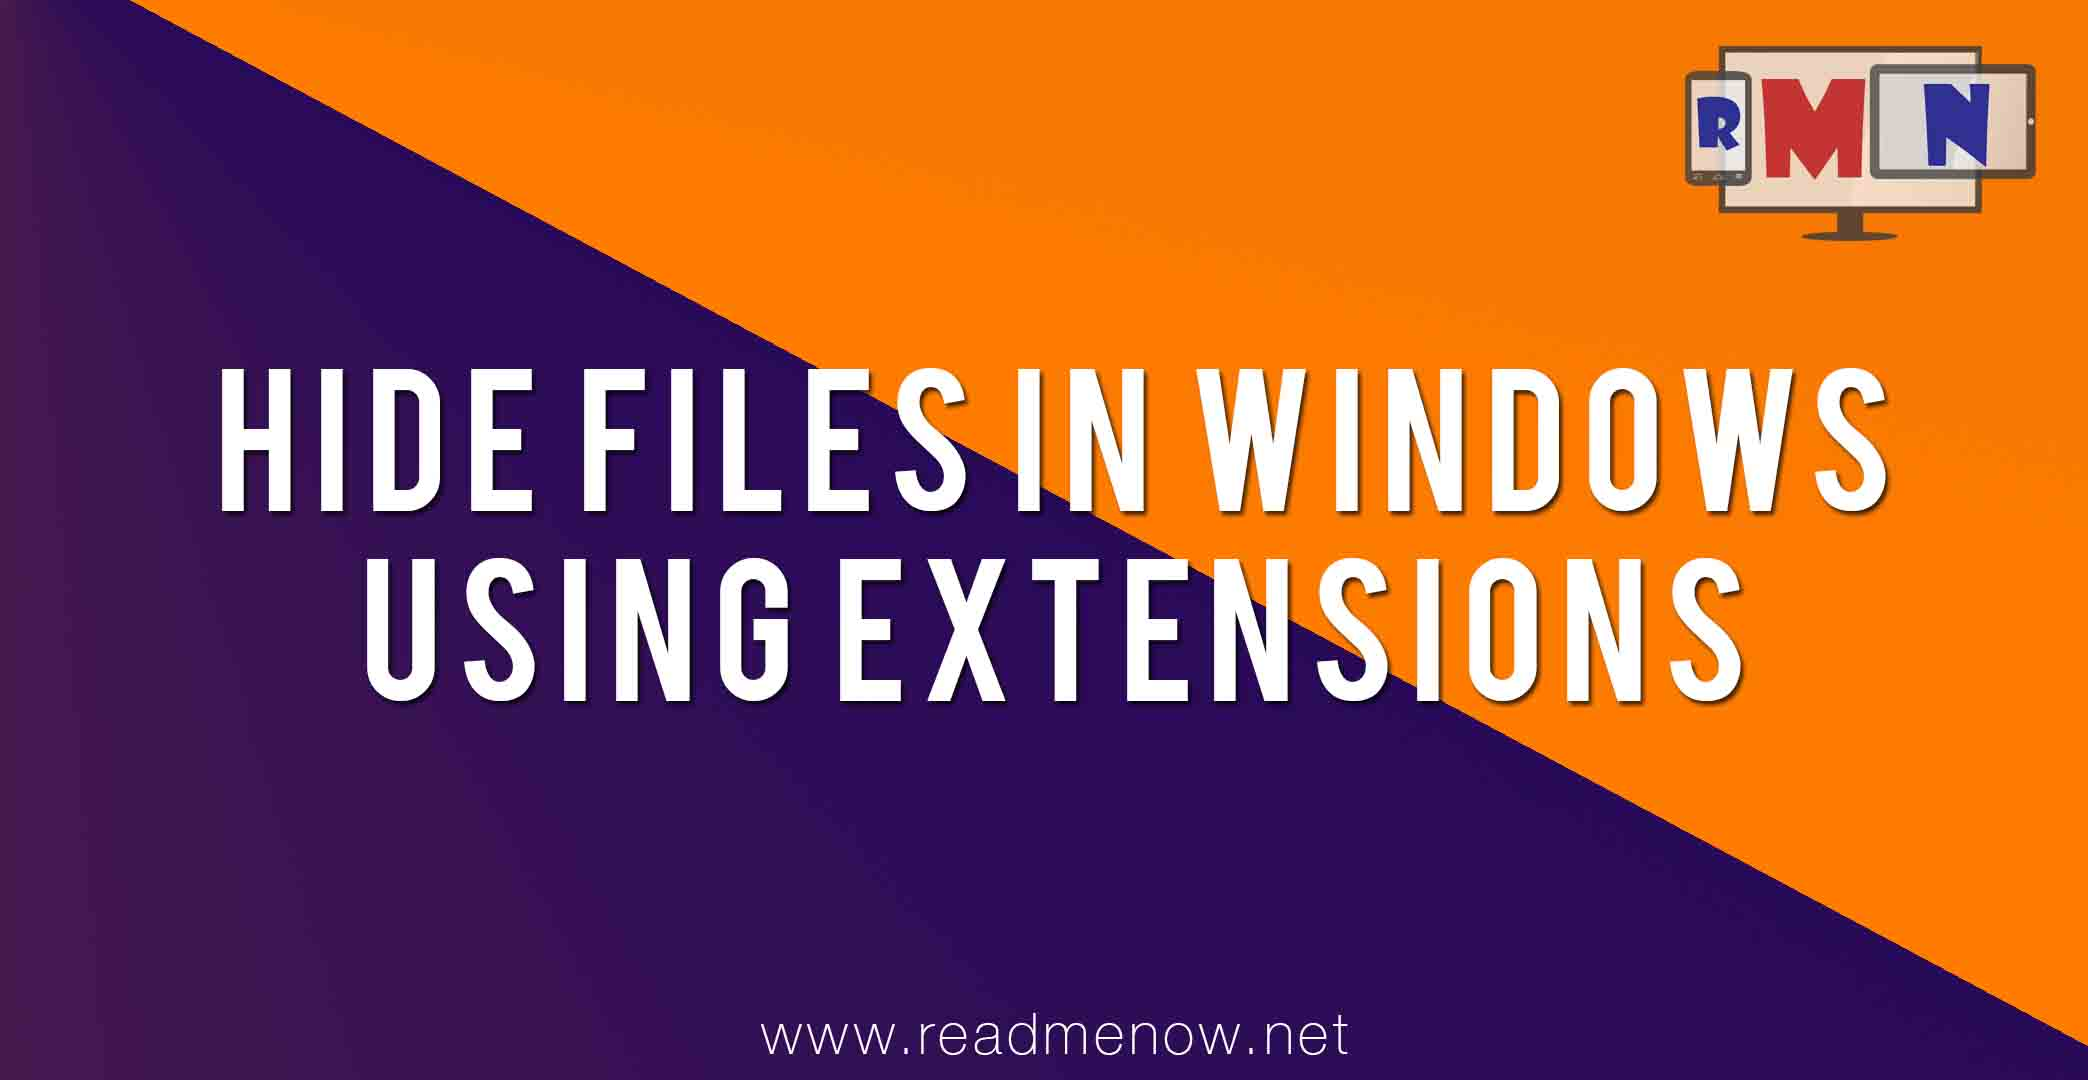 Hide files in windows using file extensions